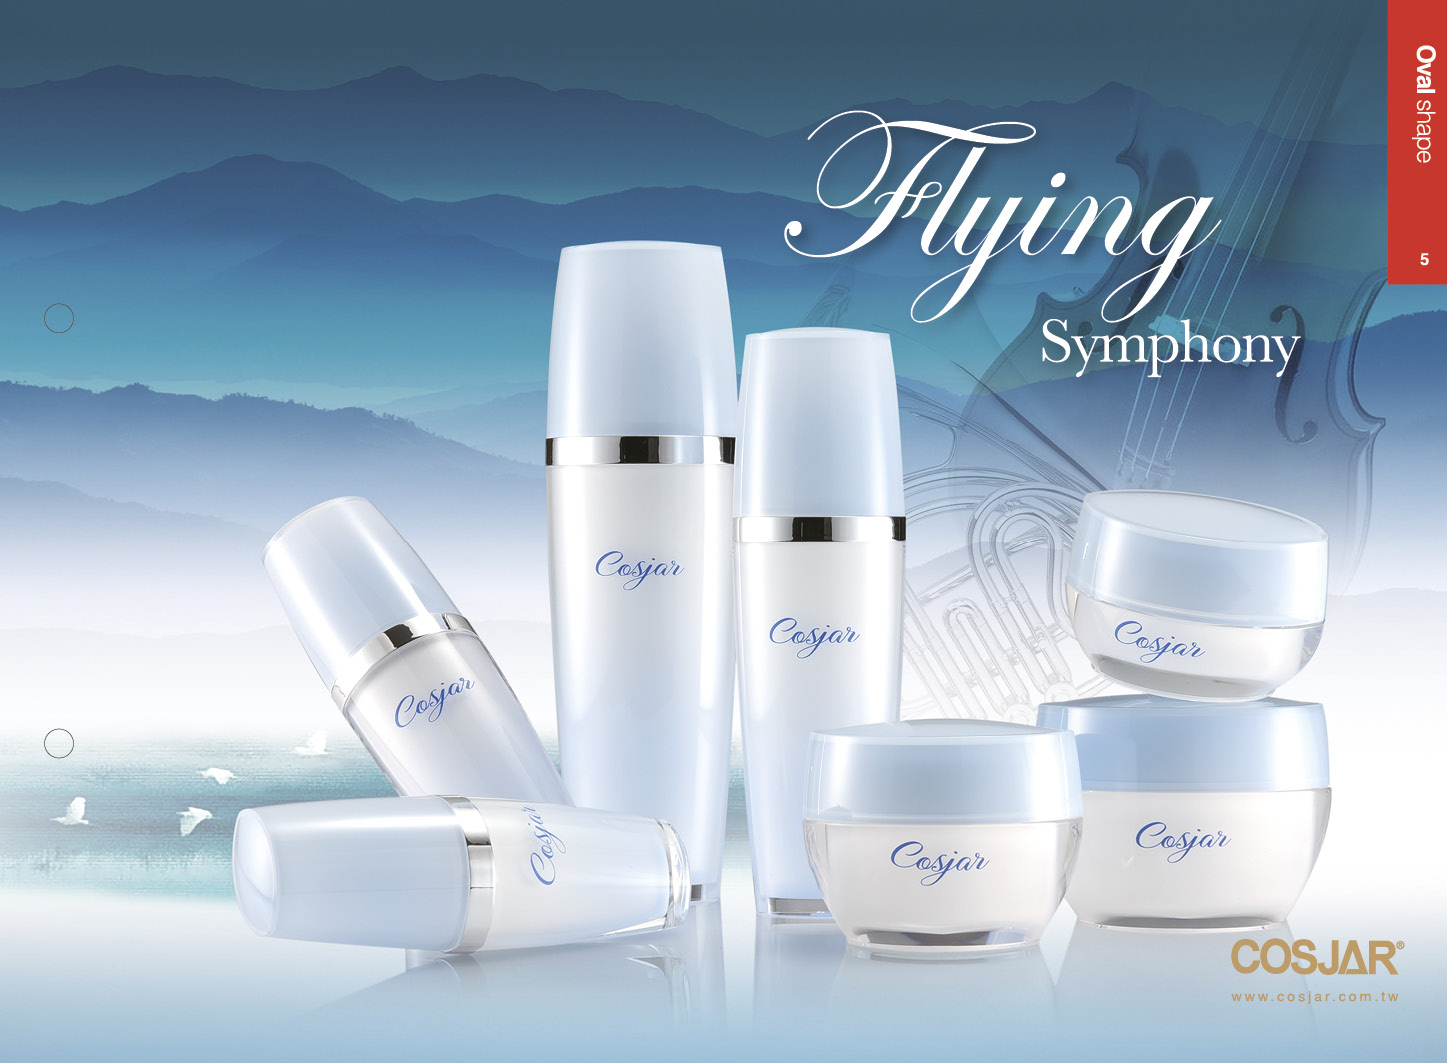 飛揚交響系列 - Cosmetic Packaging Collection - Flying Symphony